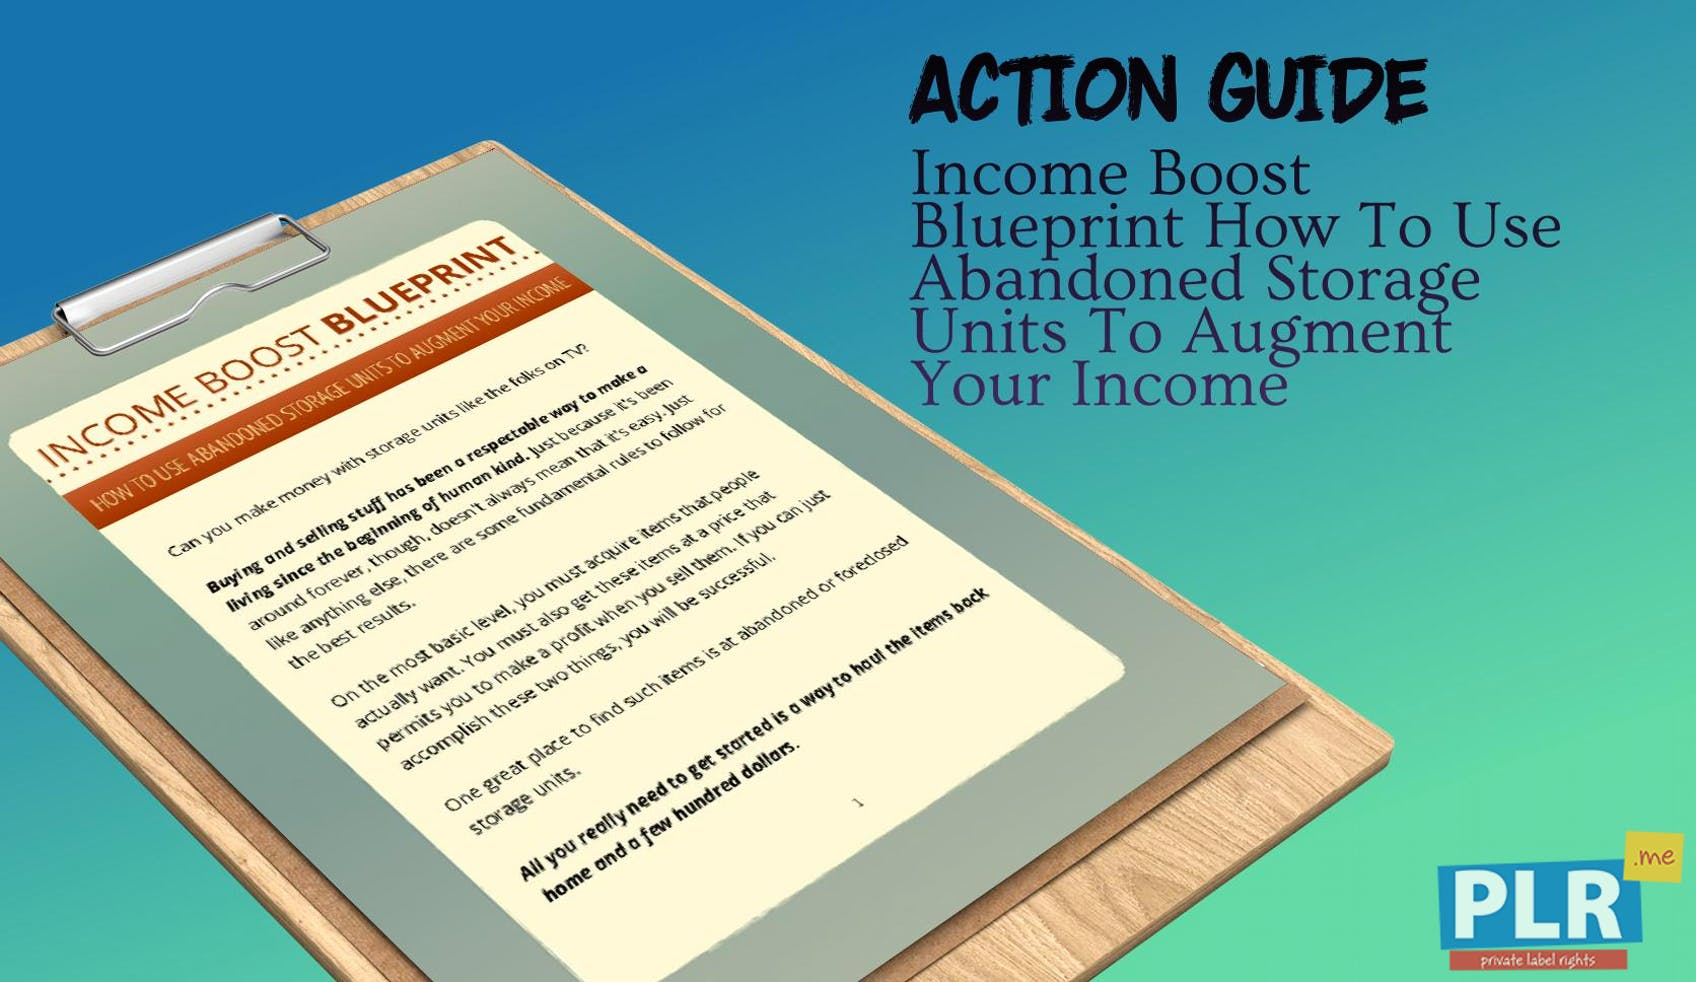 Plr action guides coaching handouts lead magnets income boost income boost blueprint how to use abandoned storage units to augment your income malvernweather Gallery